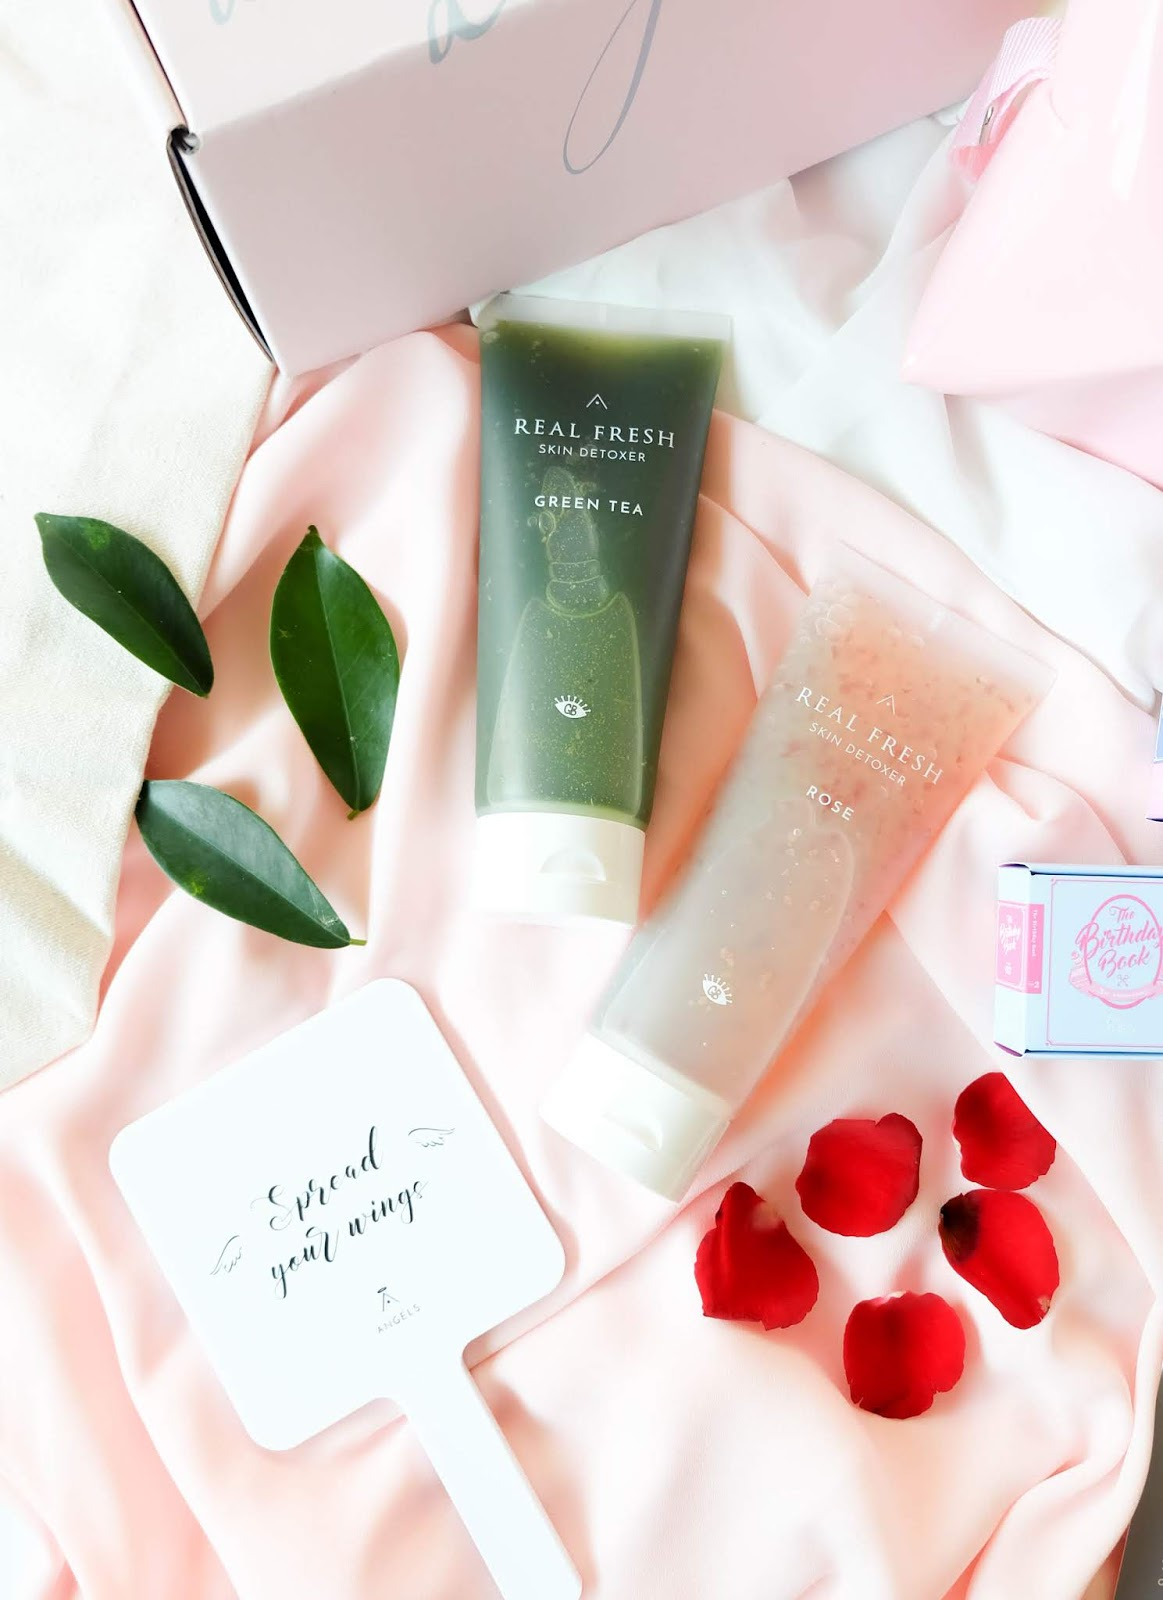 Althea Korea x Get It Beauty Real Fresh Skin Detoxer